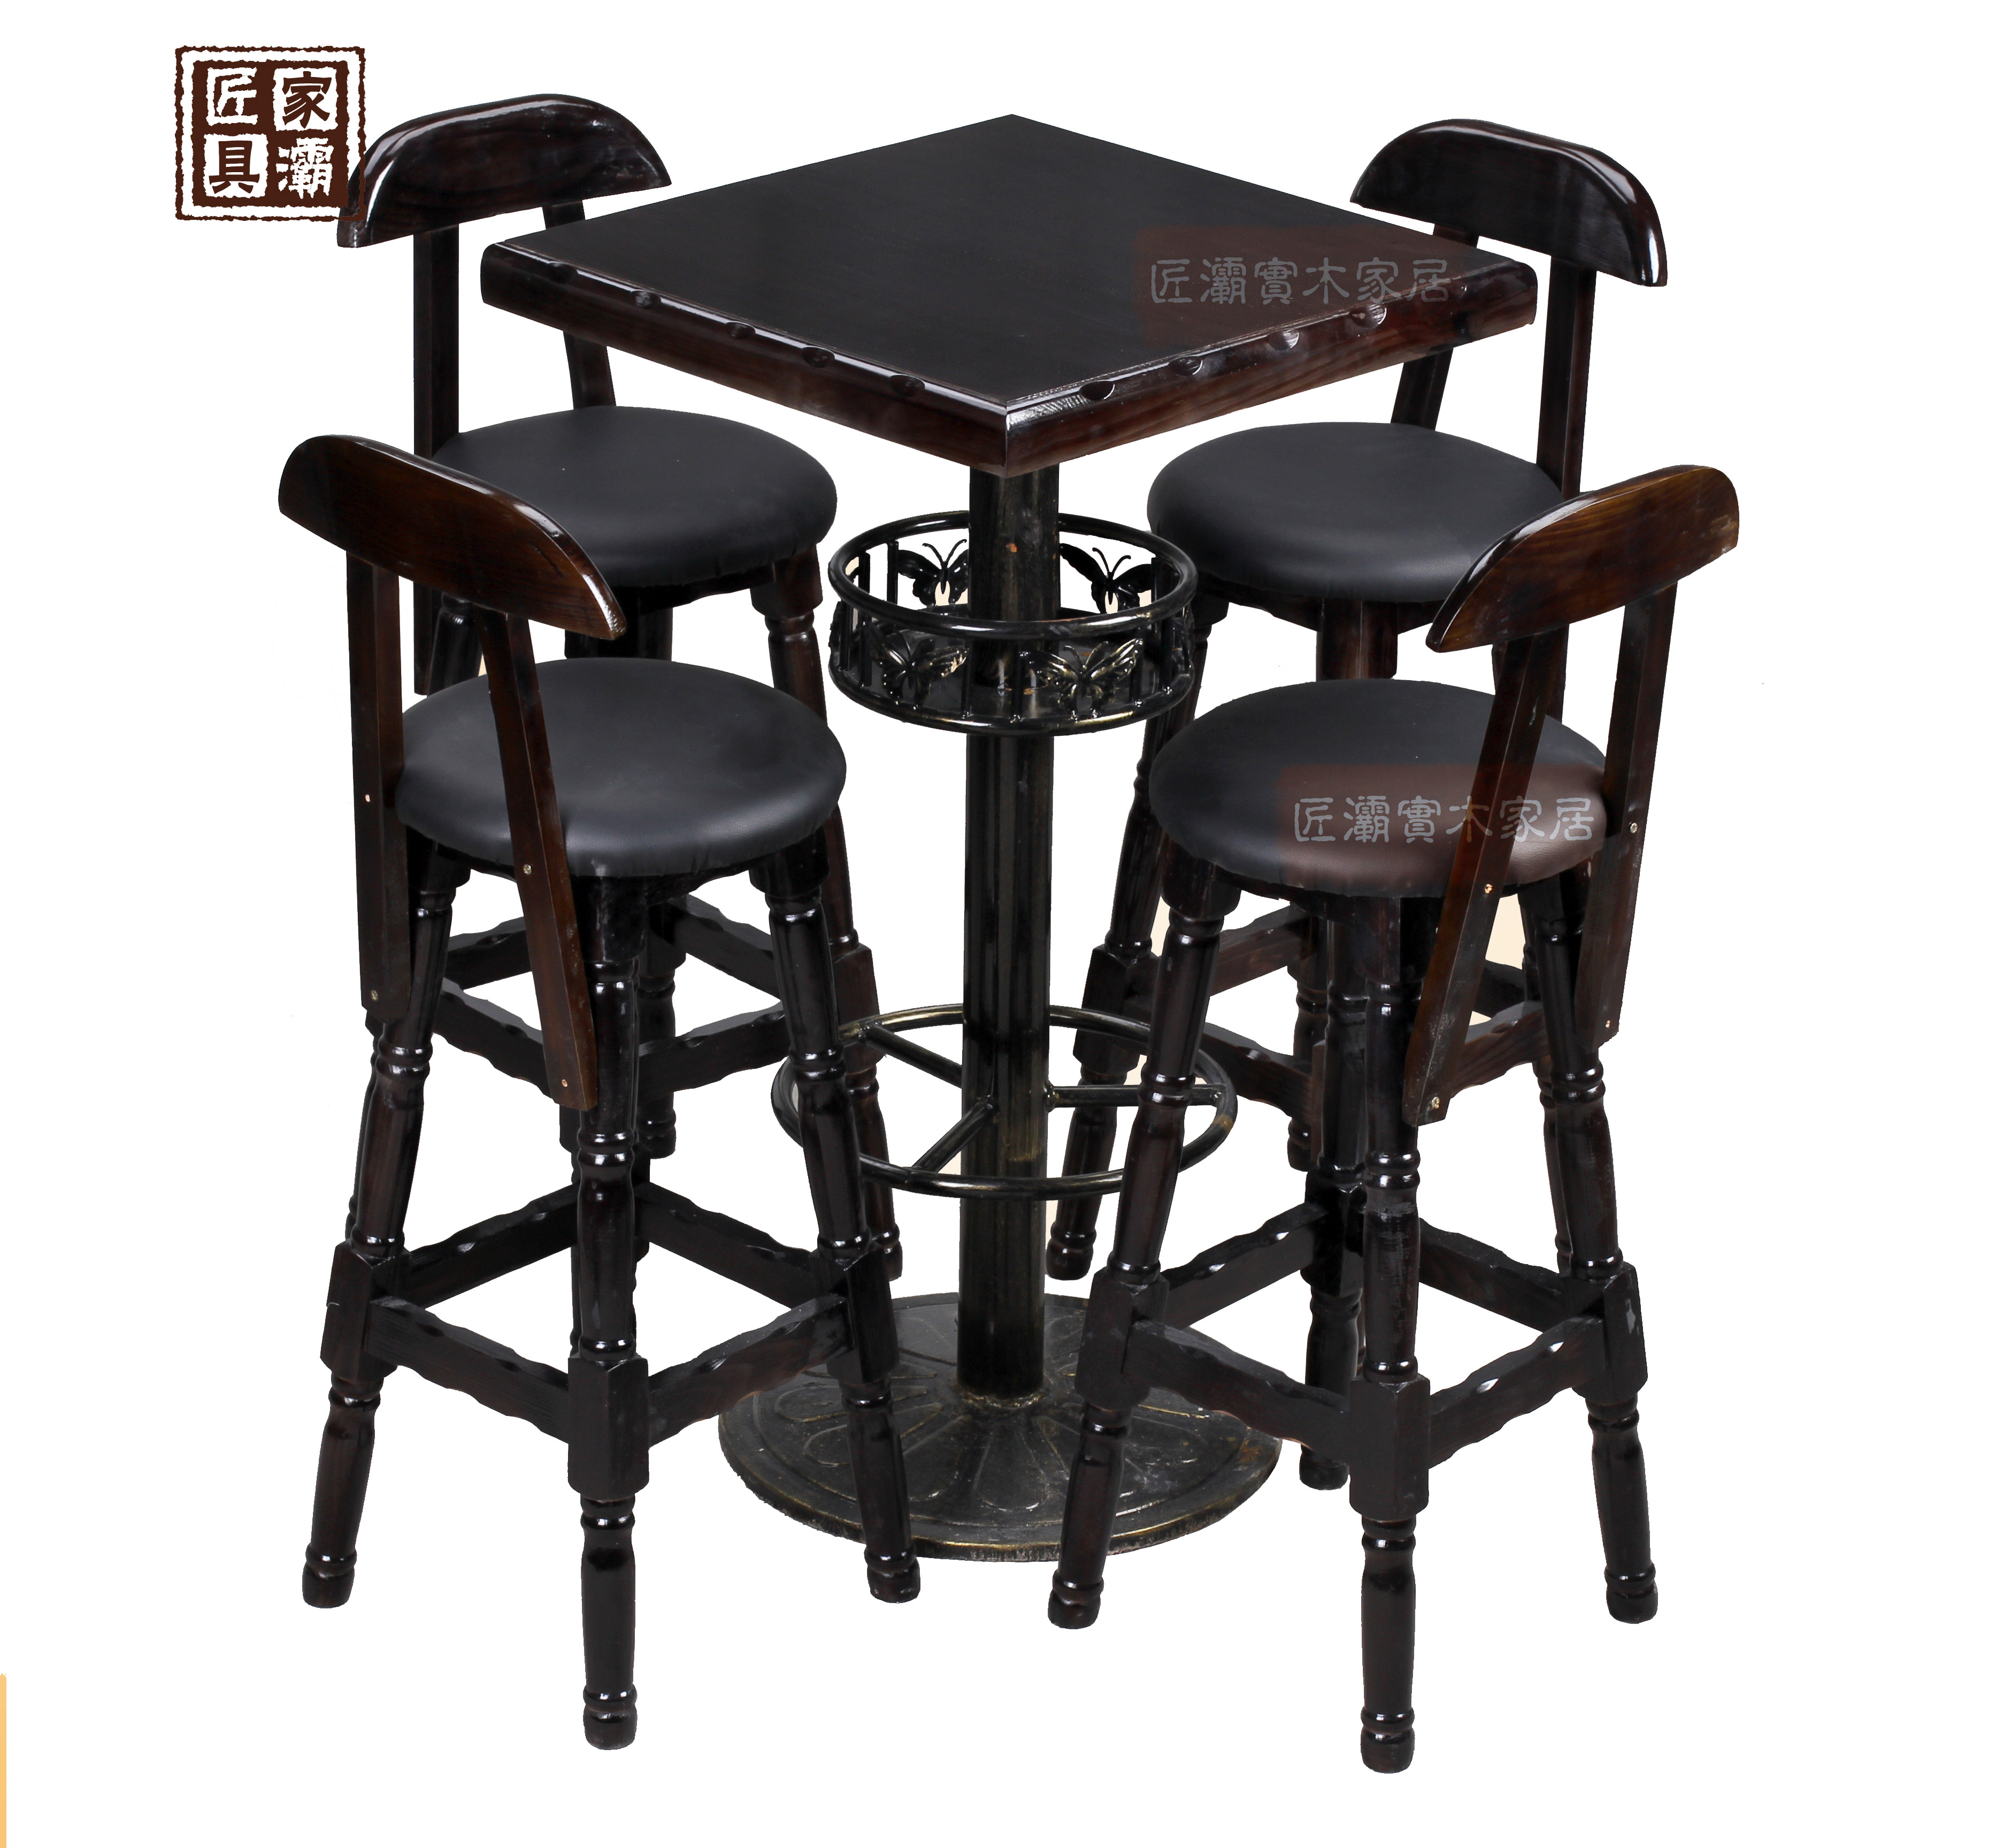 Wood bar tables and chairs wood preservative outdoor patio tables and chairs/bar restaurant tables and chairs/solid wood table and chairs